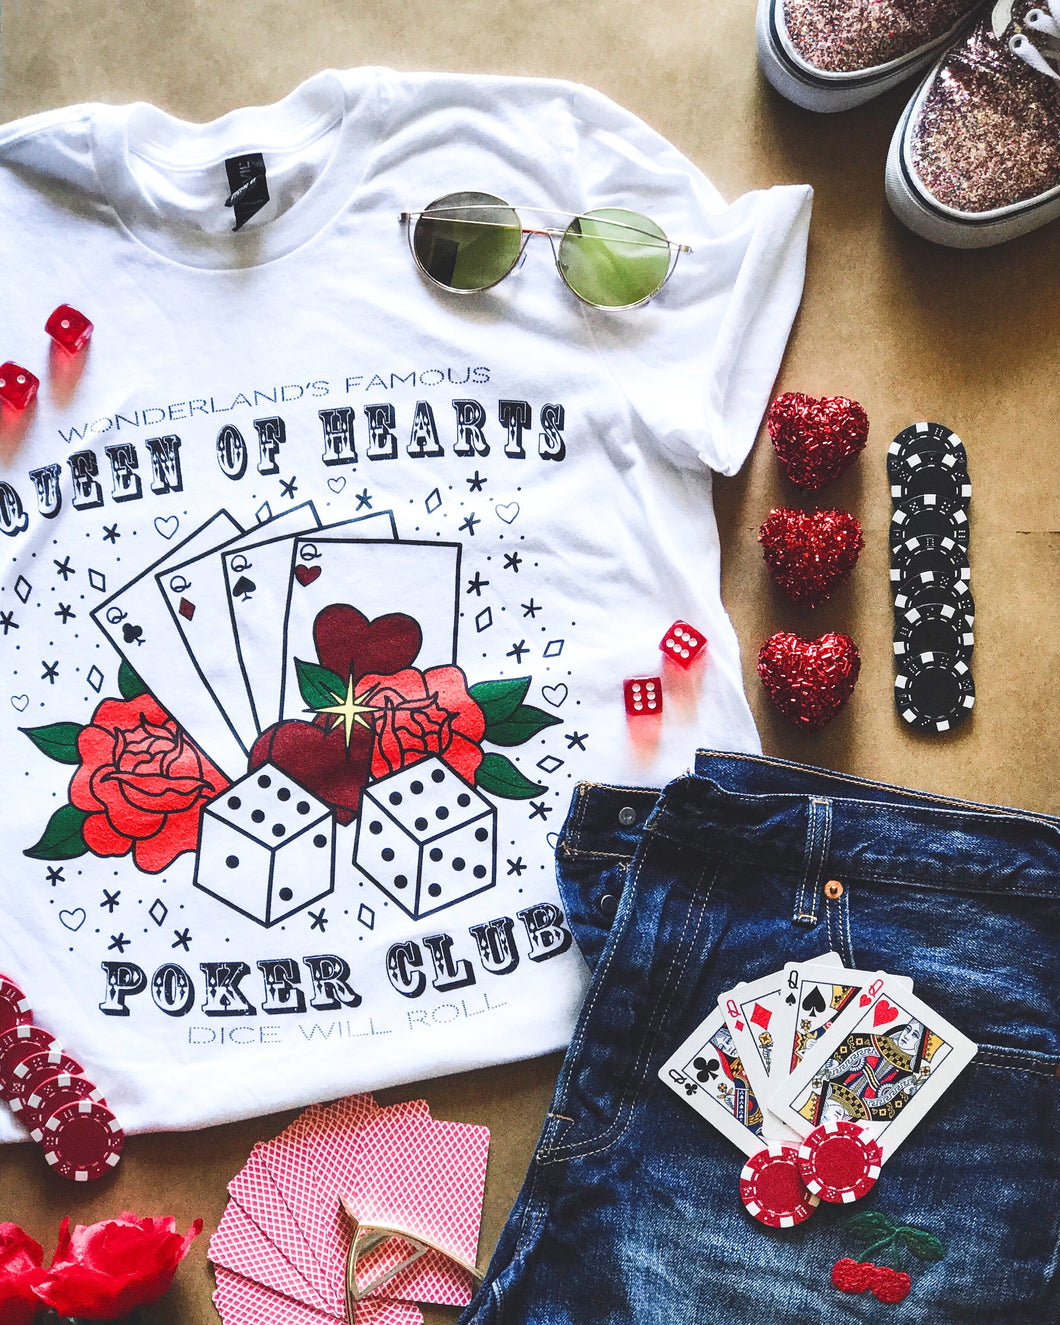 Hearts Poker Club Tee